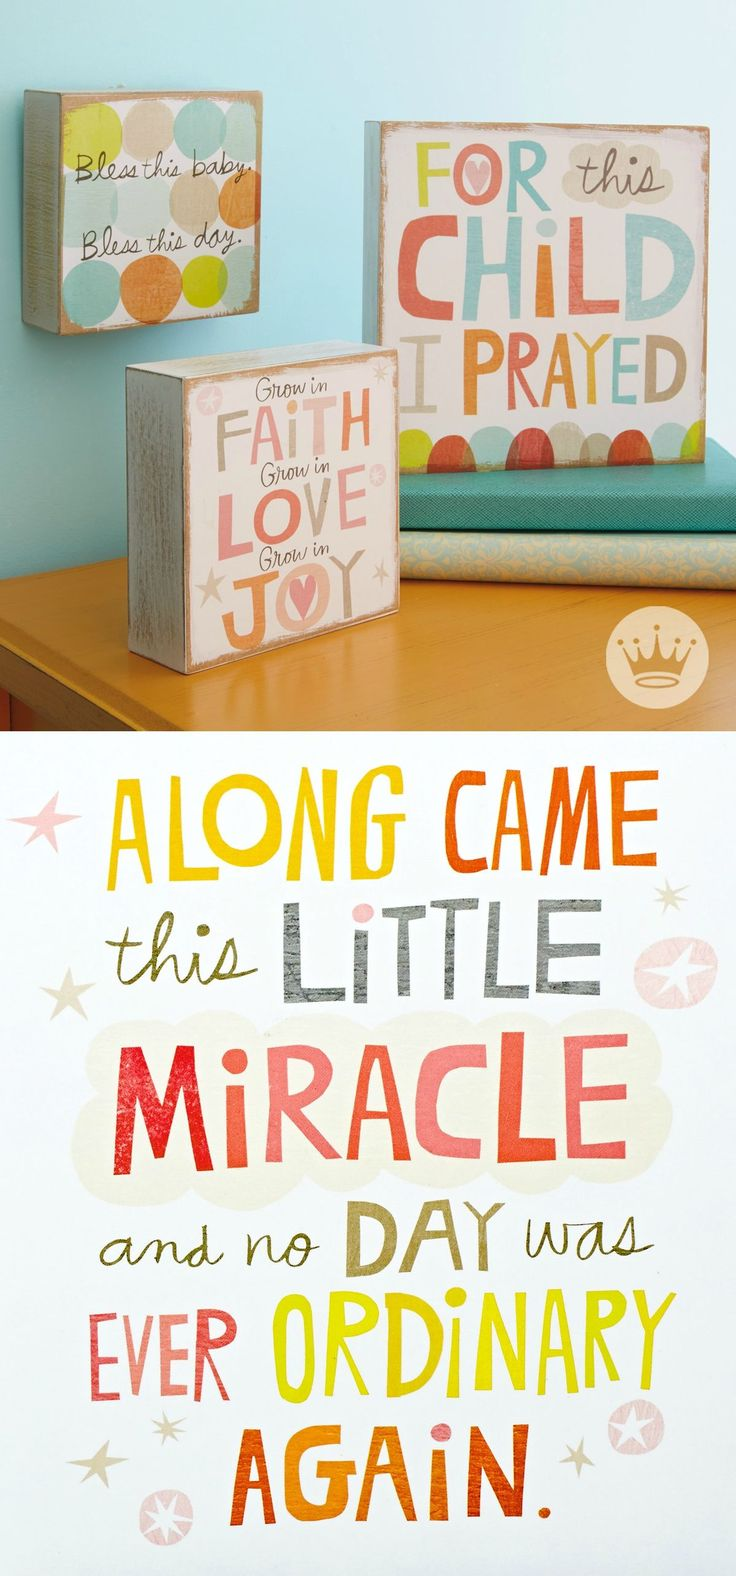 These colorful, hand-lettered sentiments capture the emotion and gratitude that comes along with a new baby.